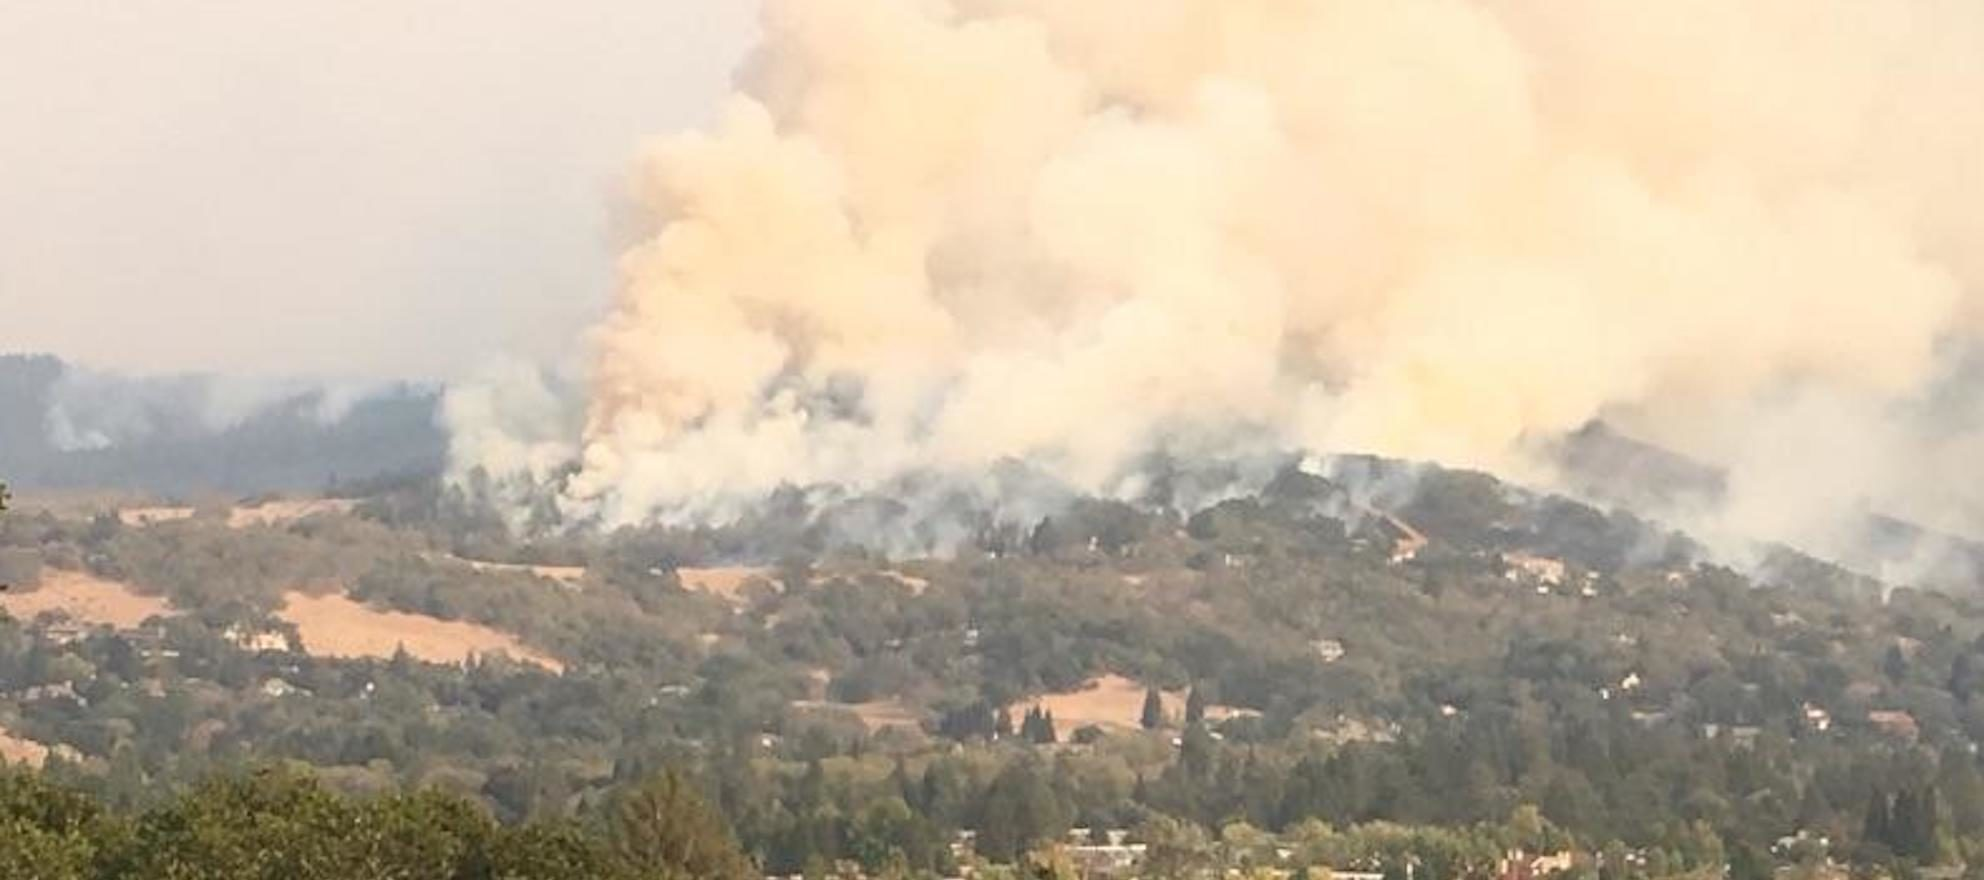 The latest from the Northern California wildfires